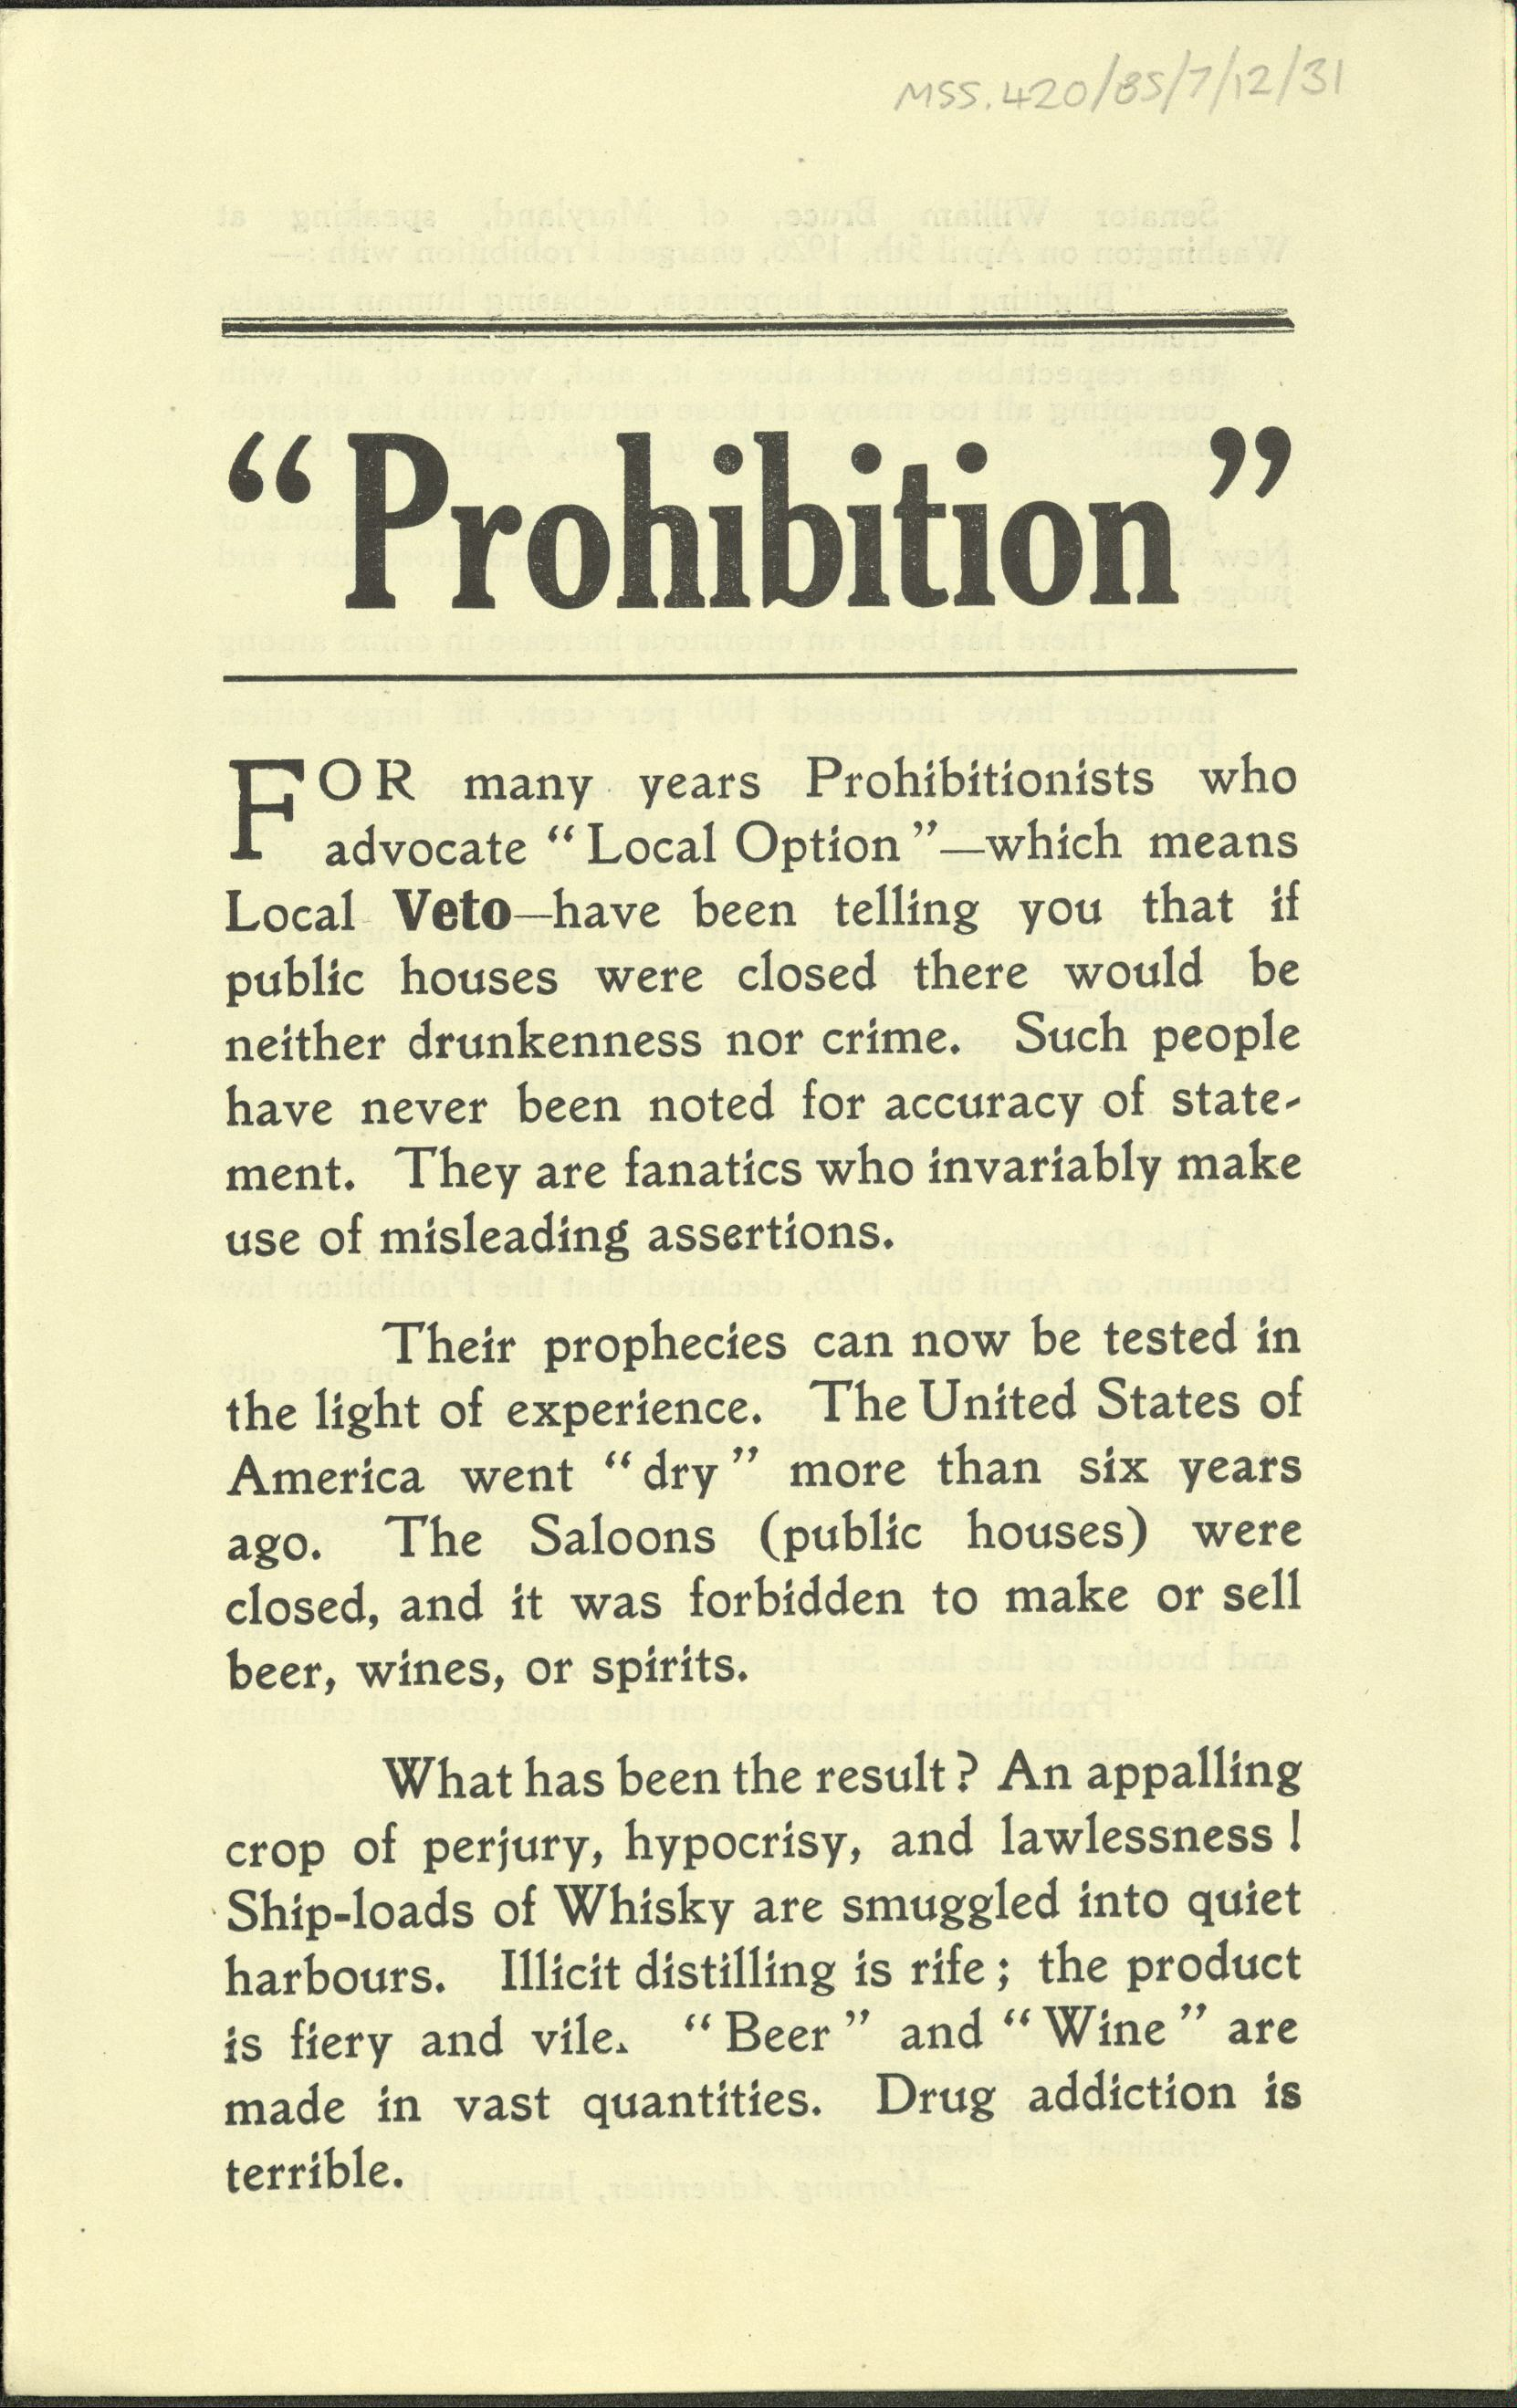 an essay on the prohibition and its effect in the united states between 1920 and 1933 National prohibition of alcohol between 1920 and 1933 was united states and alcohol essay the effects of prohibition: prohibition in the united states and.